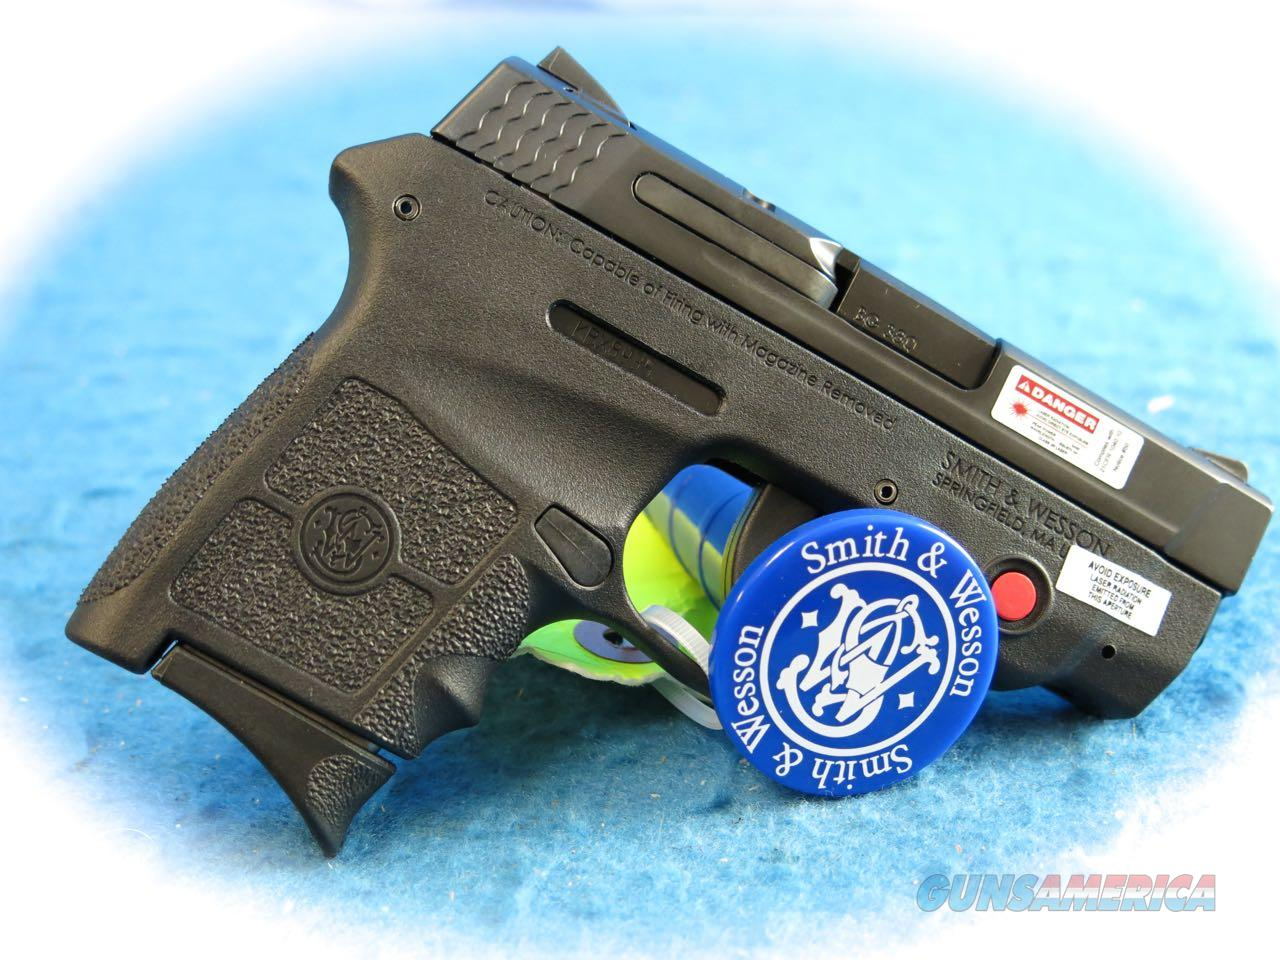 Smith & Wesson M&P Bodyguard 380 W/Crimson Trace Laser **New**  Guns > Pistols > Smith & Wesson Pistols - Autos > Alloy Frame